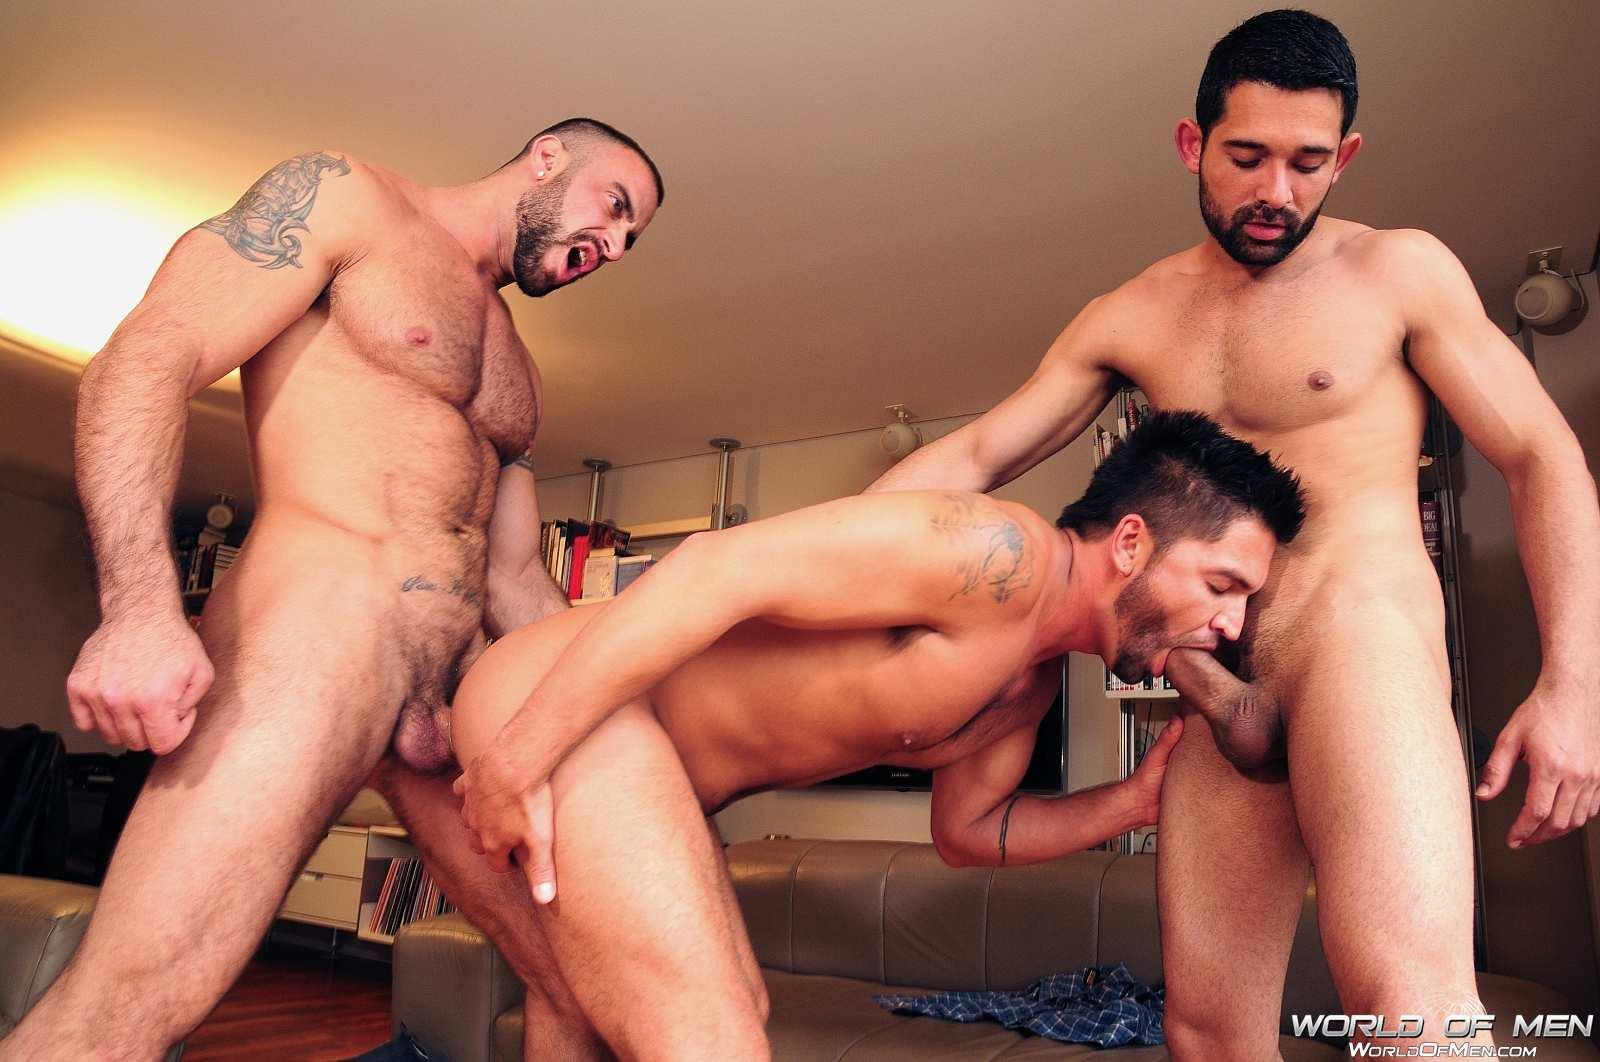 World Of Men Spencer Reed and Dominic Pacifico and Billy Baval Taking Two Huge Cocks Up The Ass Tagteam  Amateur Gay Porn 07